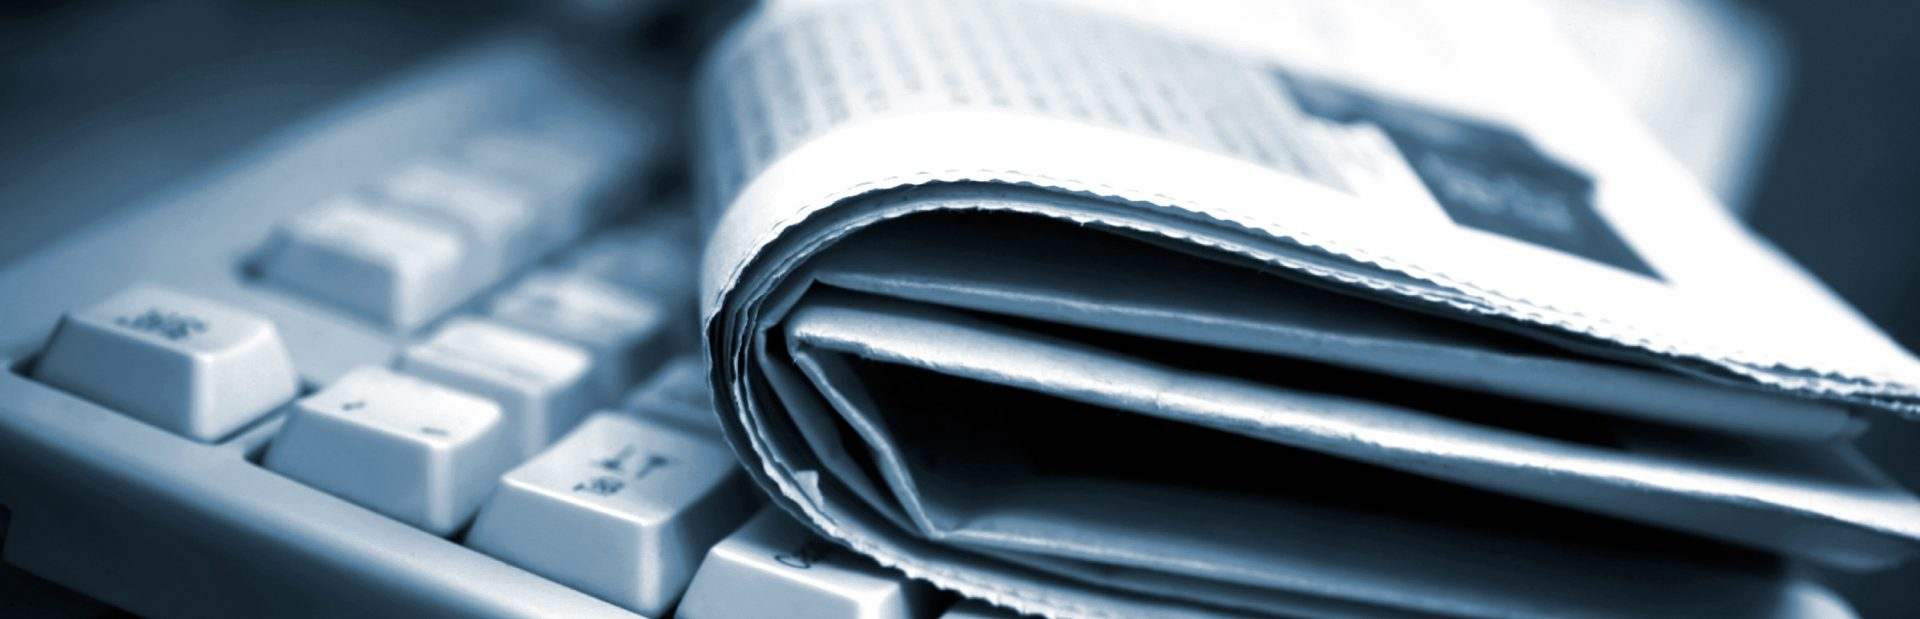 Accreditamento in Campania: due importanti news dalla Regione